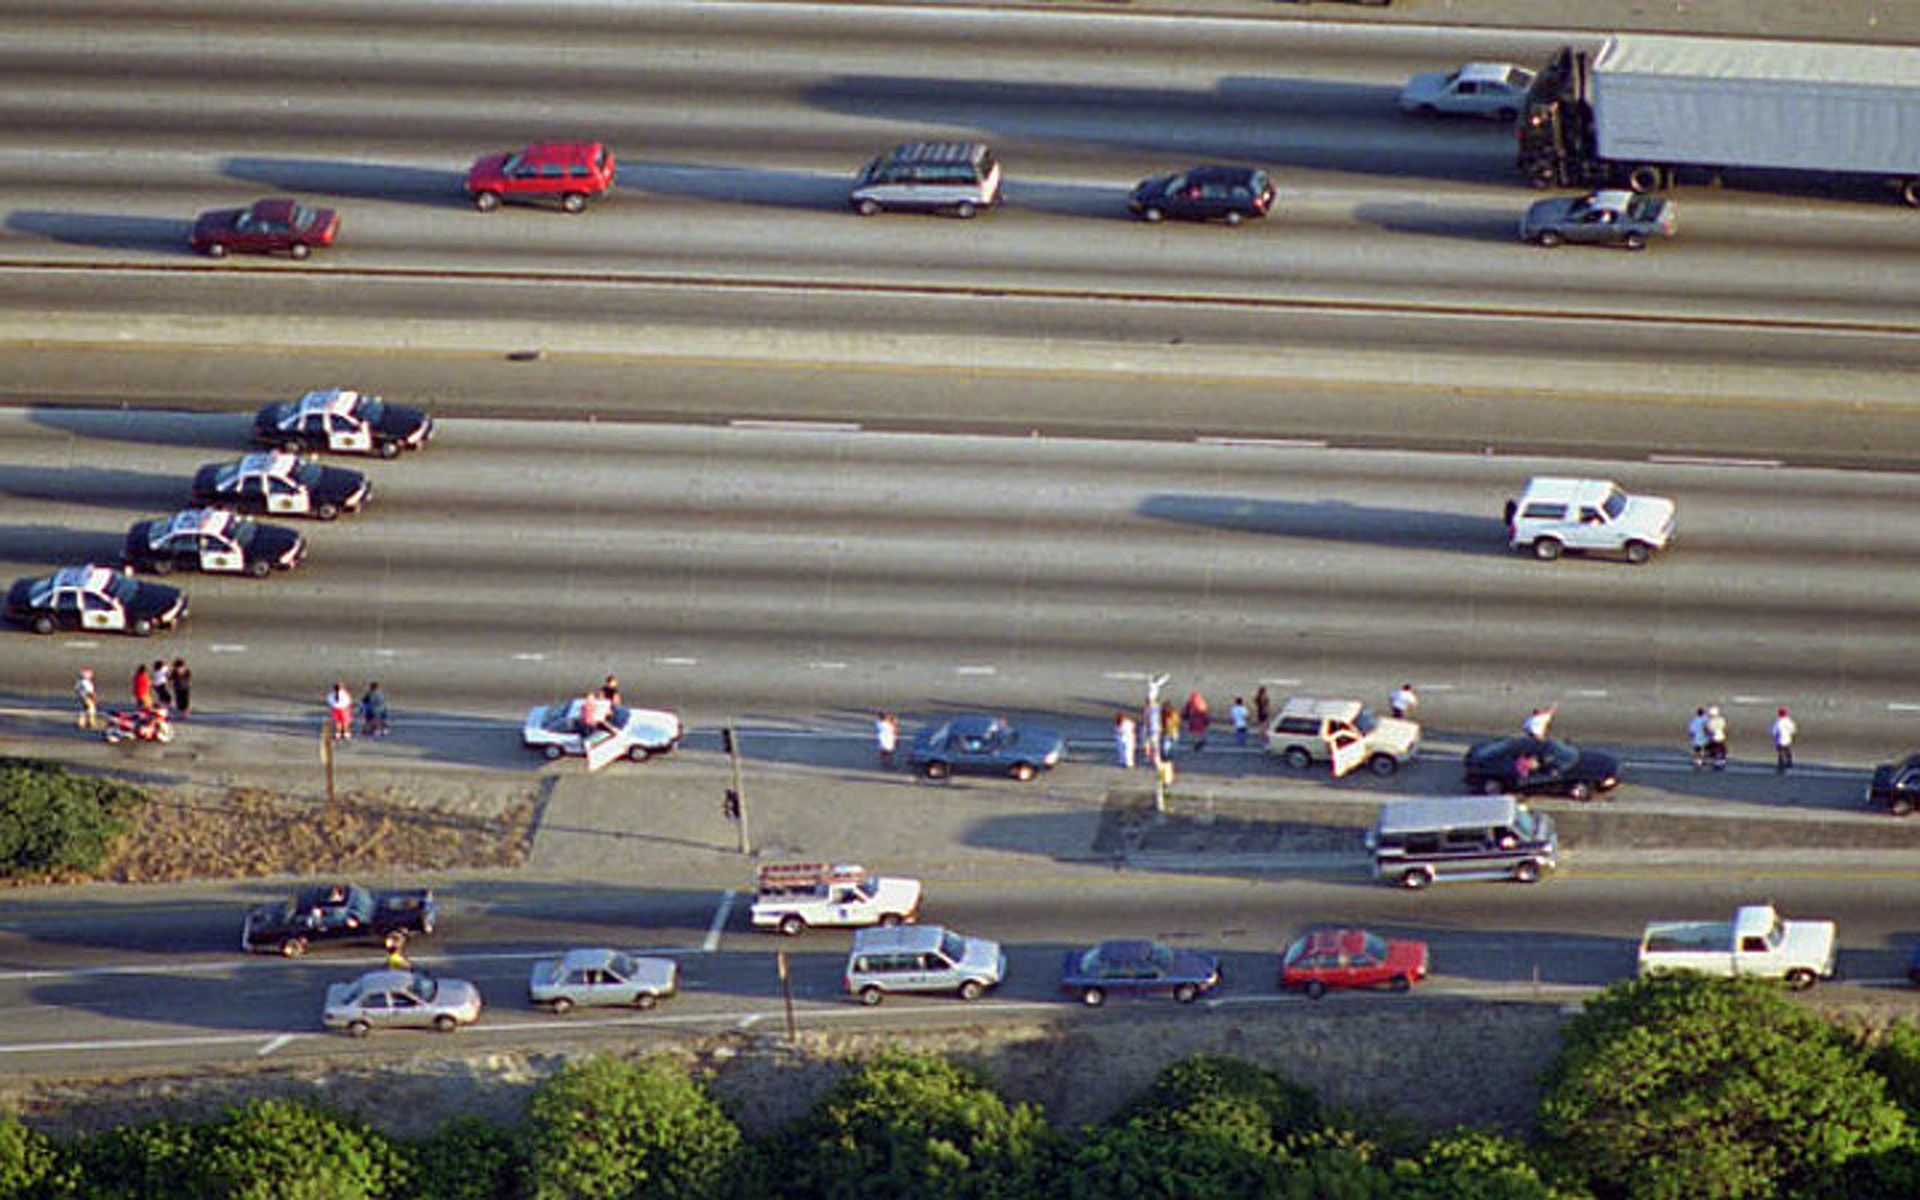 Was The Oj Simpson Trial To Blame For Demise Of Ford Bronco 1980 Jumping